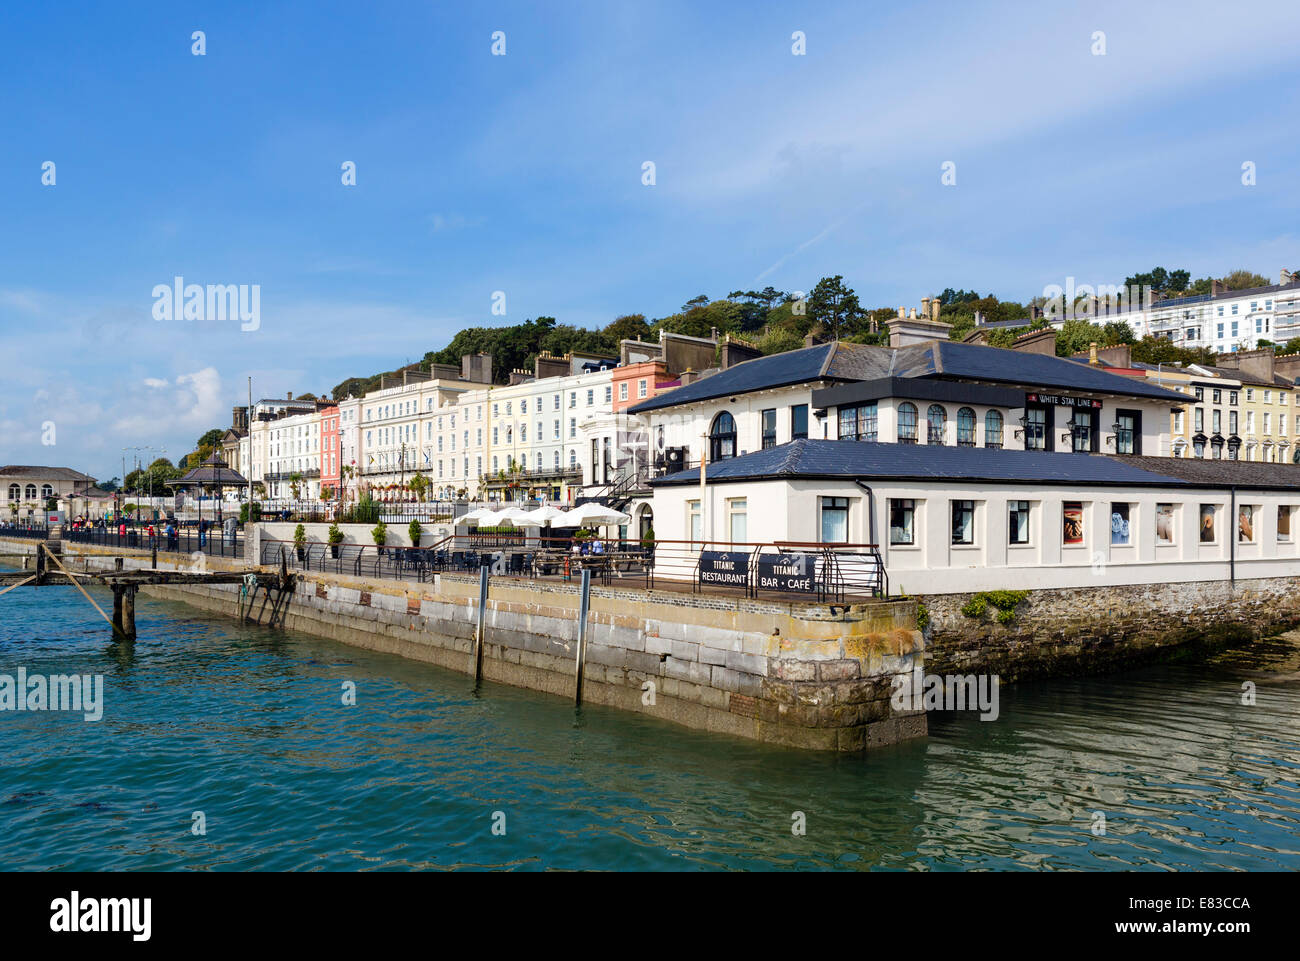 The Titanic Experience, a museum in the former offices of the White Star Line, Cobh,  Cork, Republic of Ireland - Stock Image